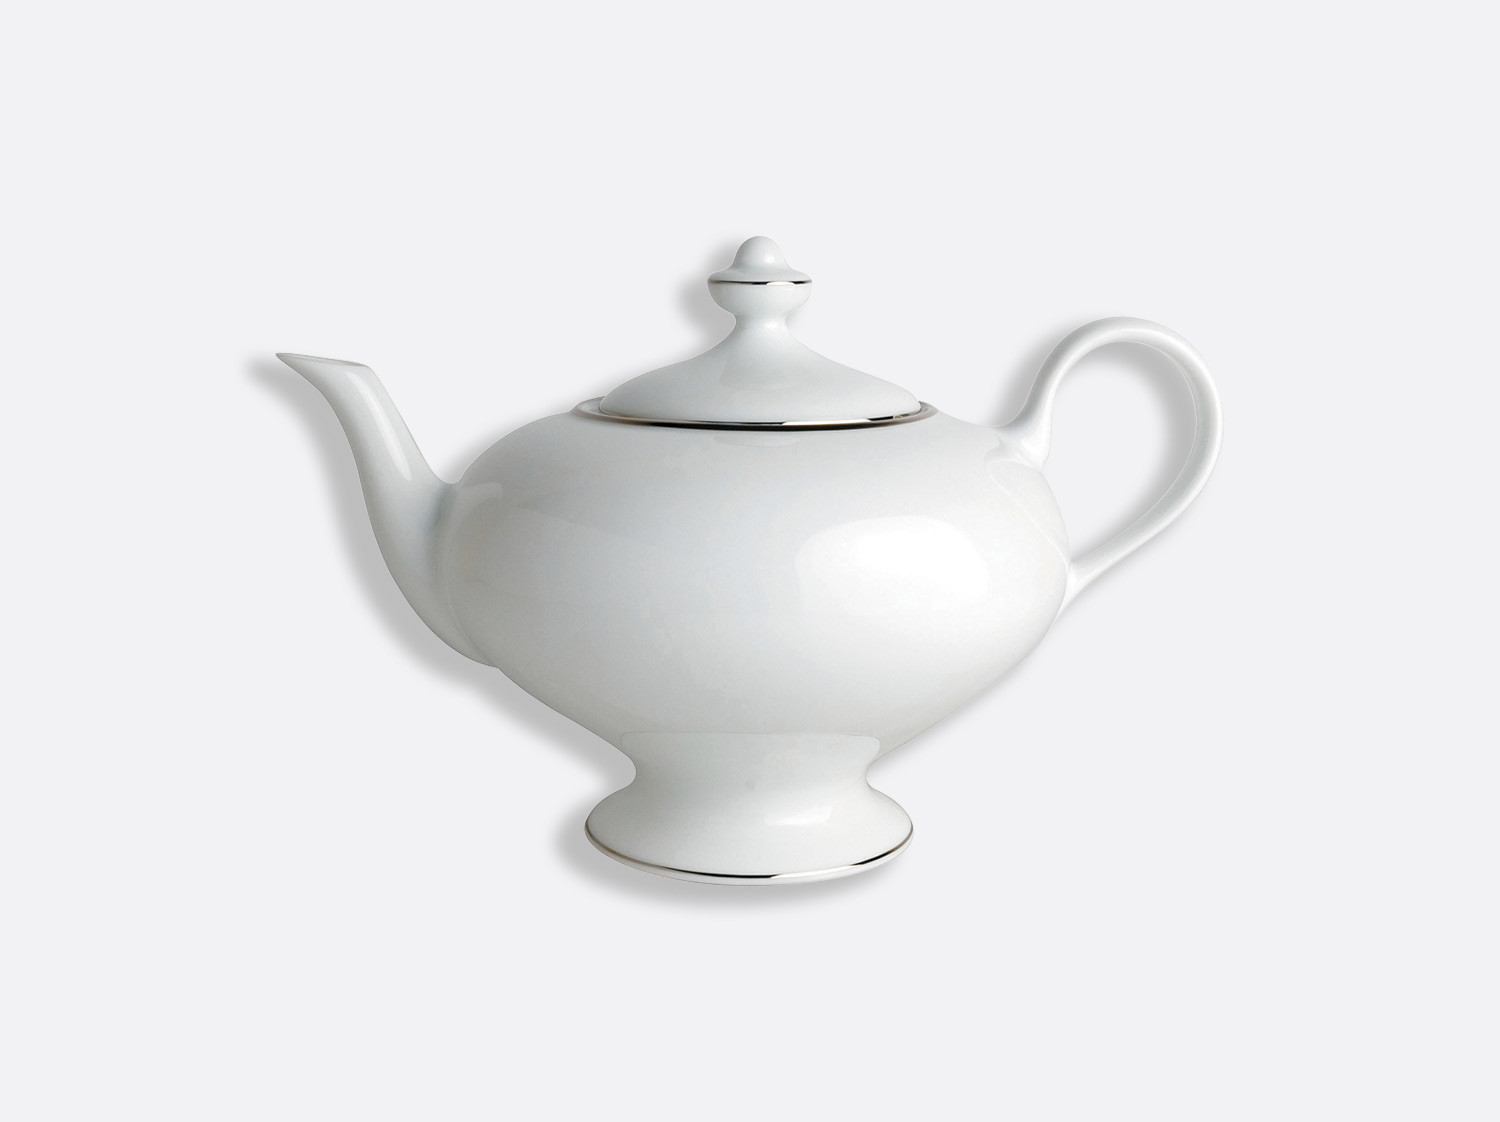 China Teapot 12 cups 75 cl of the collection Cristal | Bernardaud